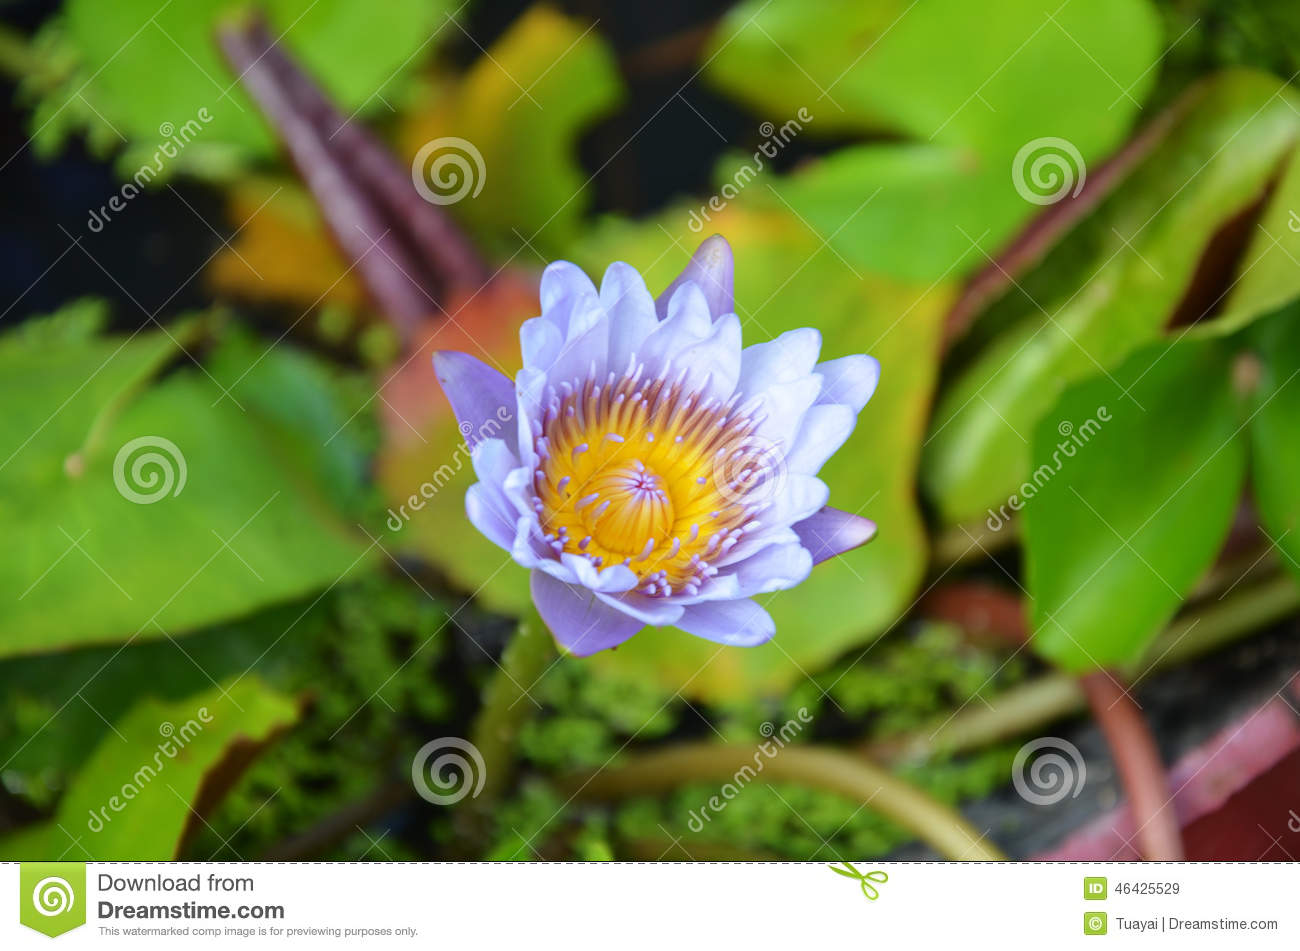 Lotus flower or water lily blossom stock image image of pure download lotus flower or water lily blossom stock image image of pure nature mightylinksfo